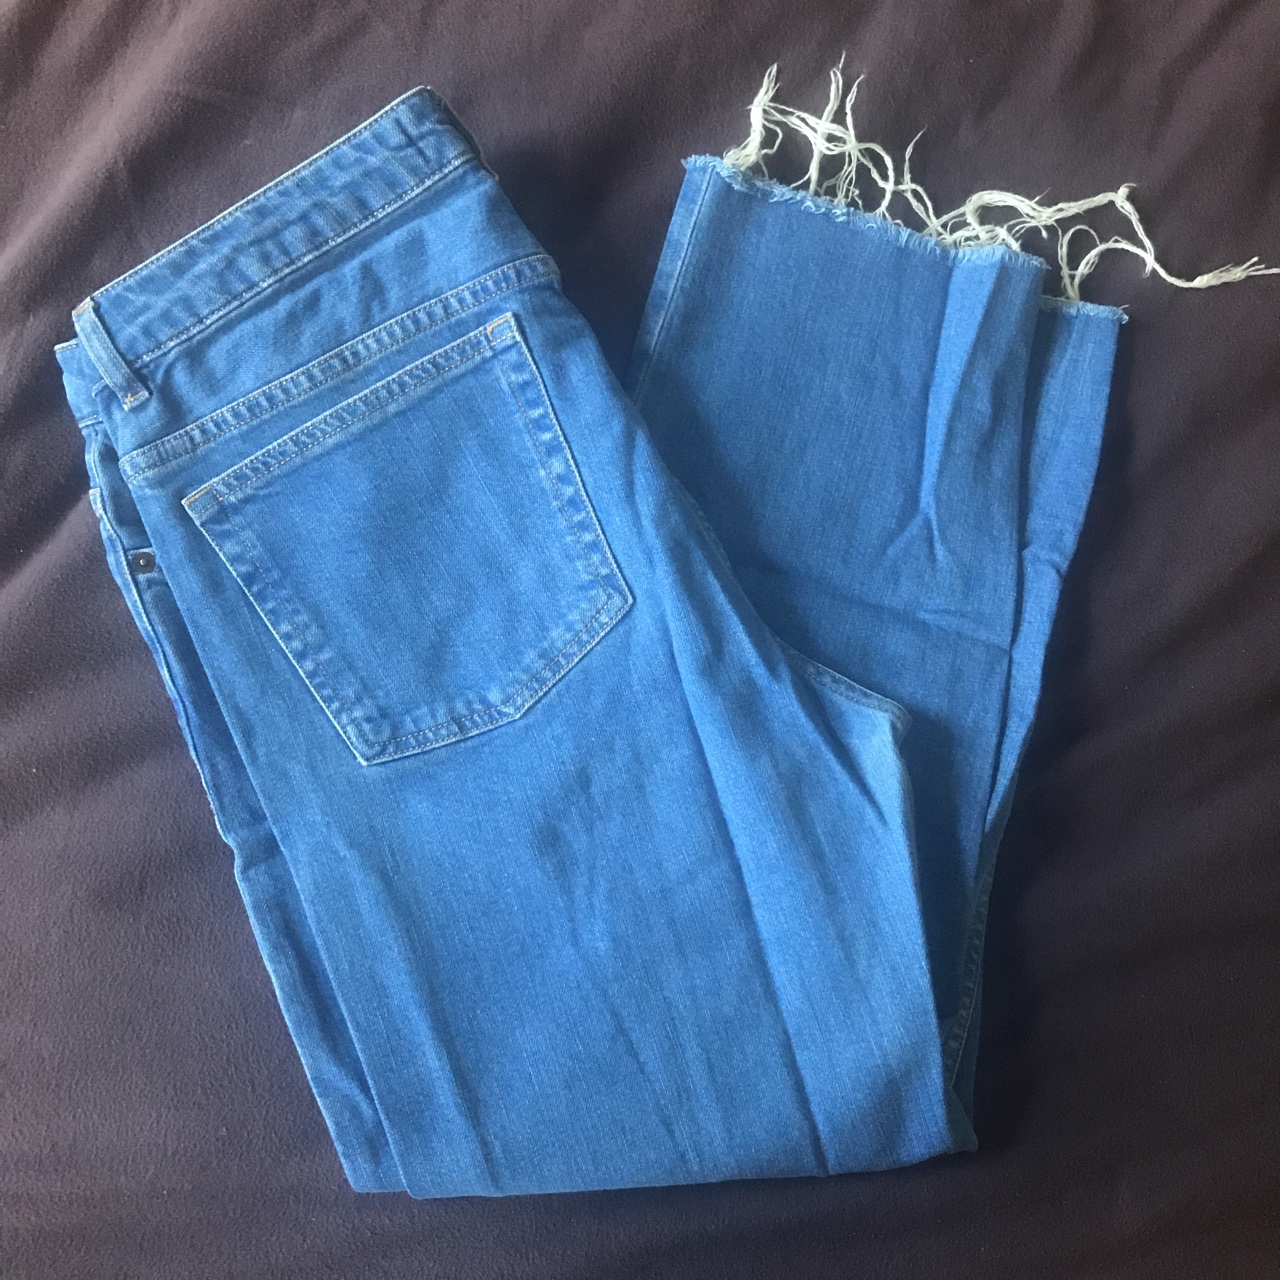 0c3c15fc0c0b Straight leg jeans by &. $18 · & Other Stories slides!